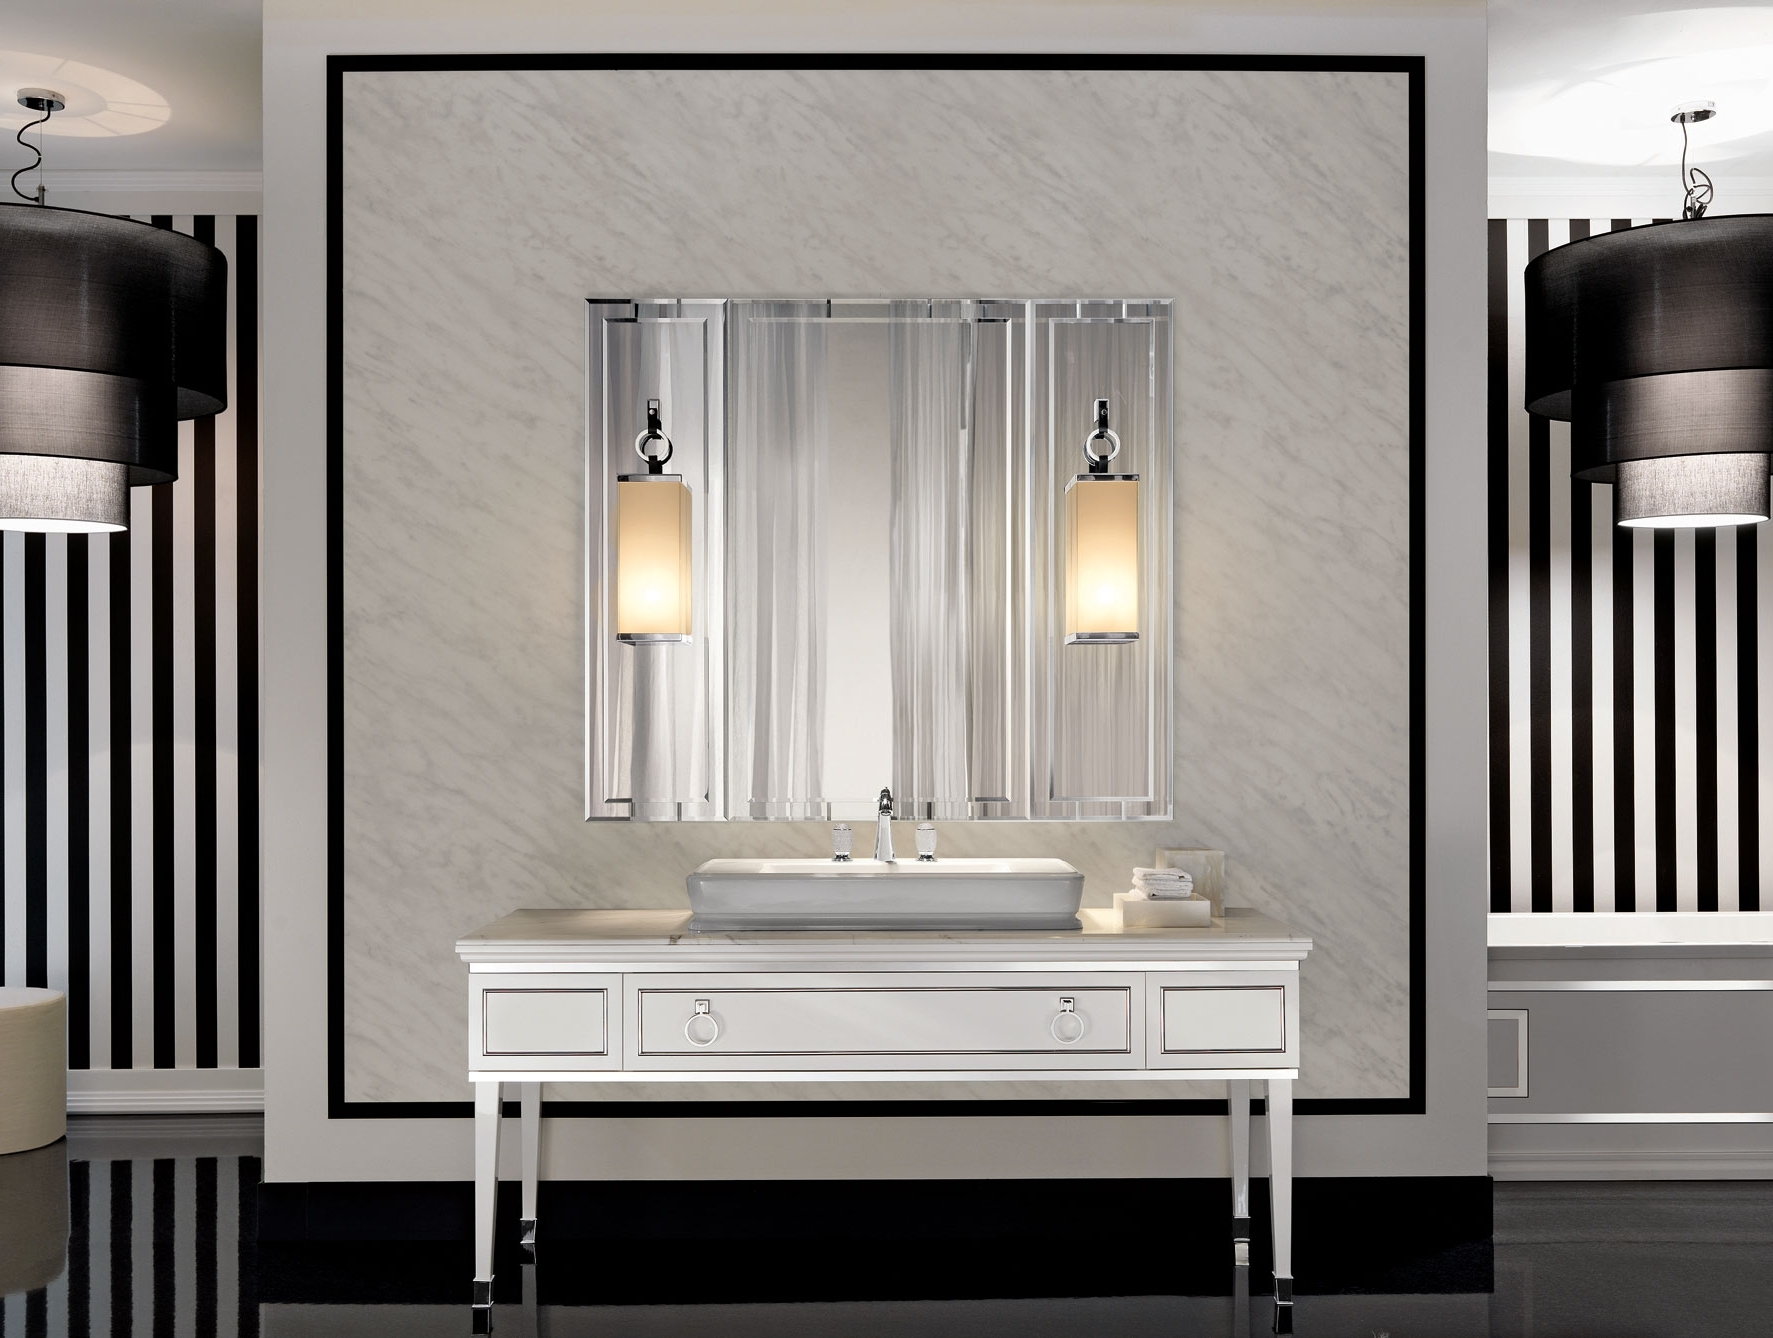 Well Liked Lutetia L3 Luxury Art Deco Italian Bathroom Furniture In White Lacquer Inside Italian Wall Art For Bathroom (View 14 of 15)